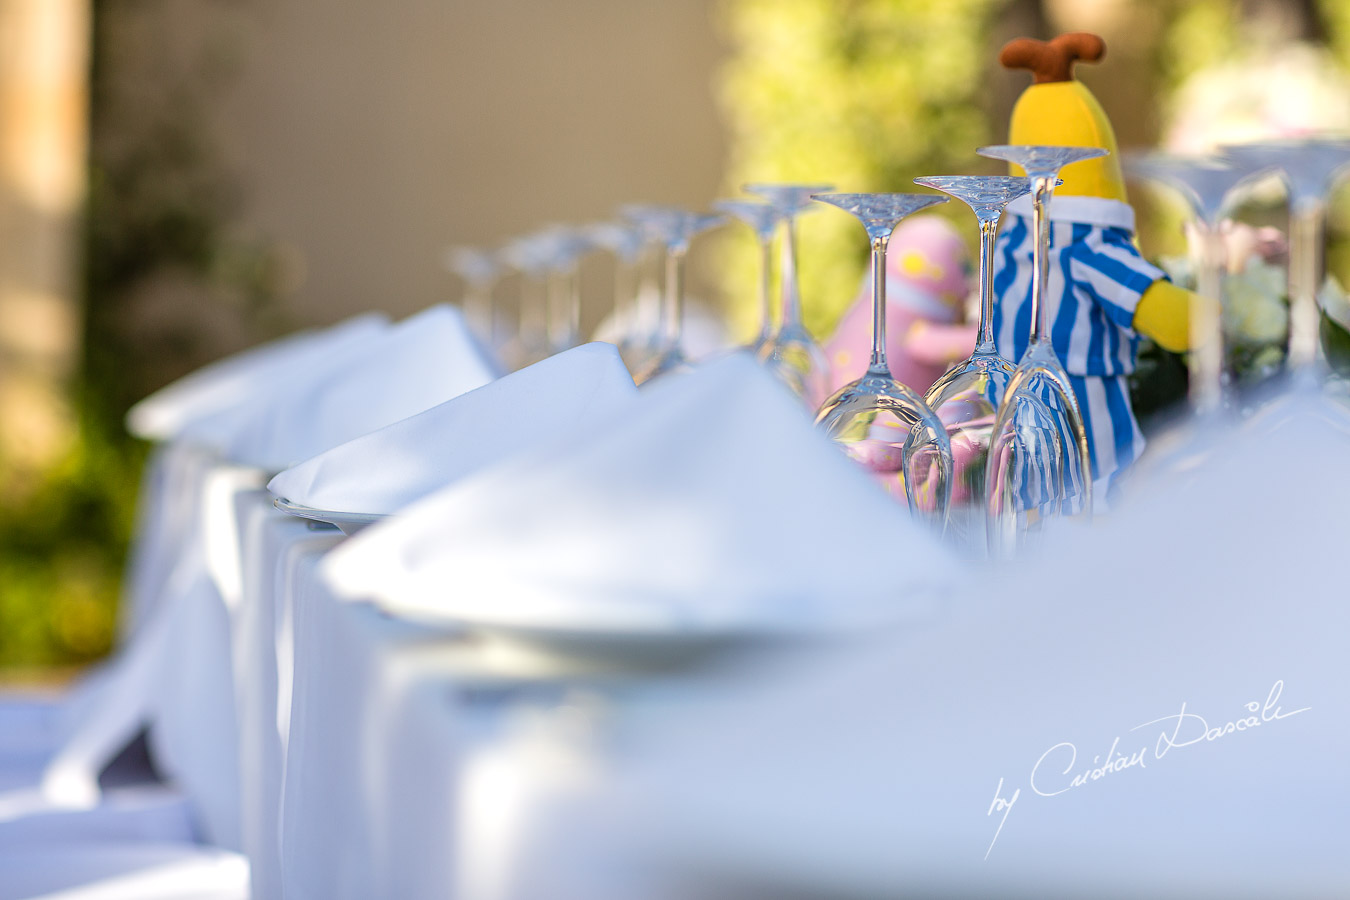 Beautiful wedding table decorations captured by Cristian Dascalu at a wedding at The Aphrodite Hills Resort in Paphos, Cyprus.